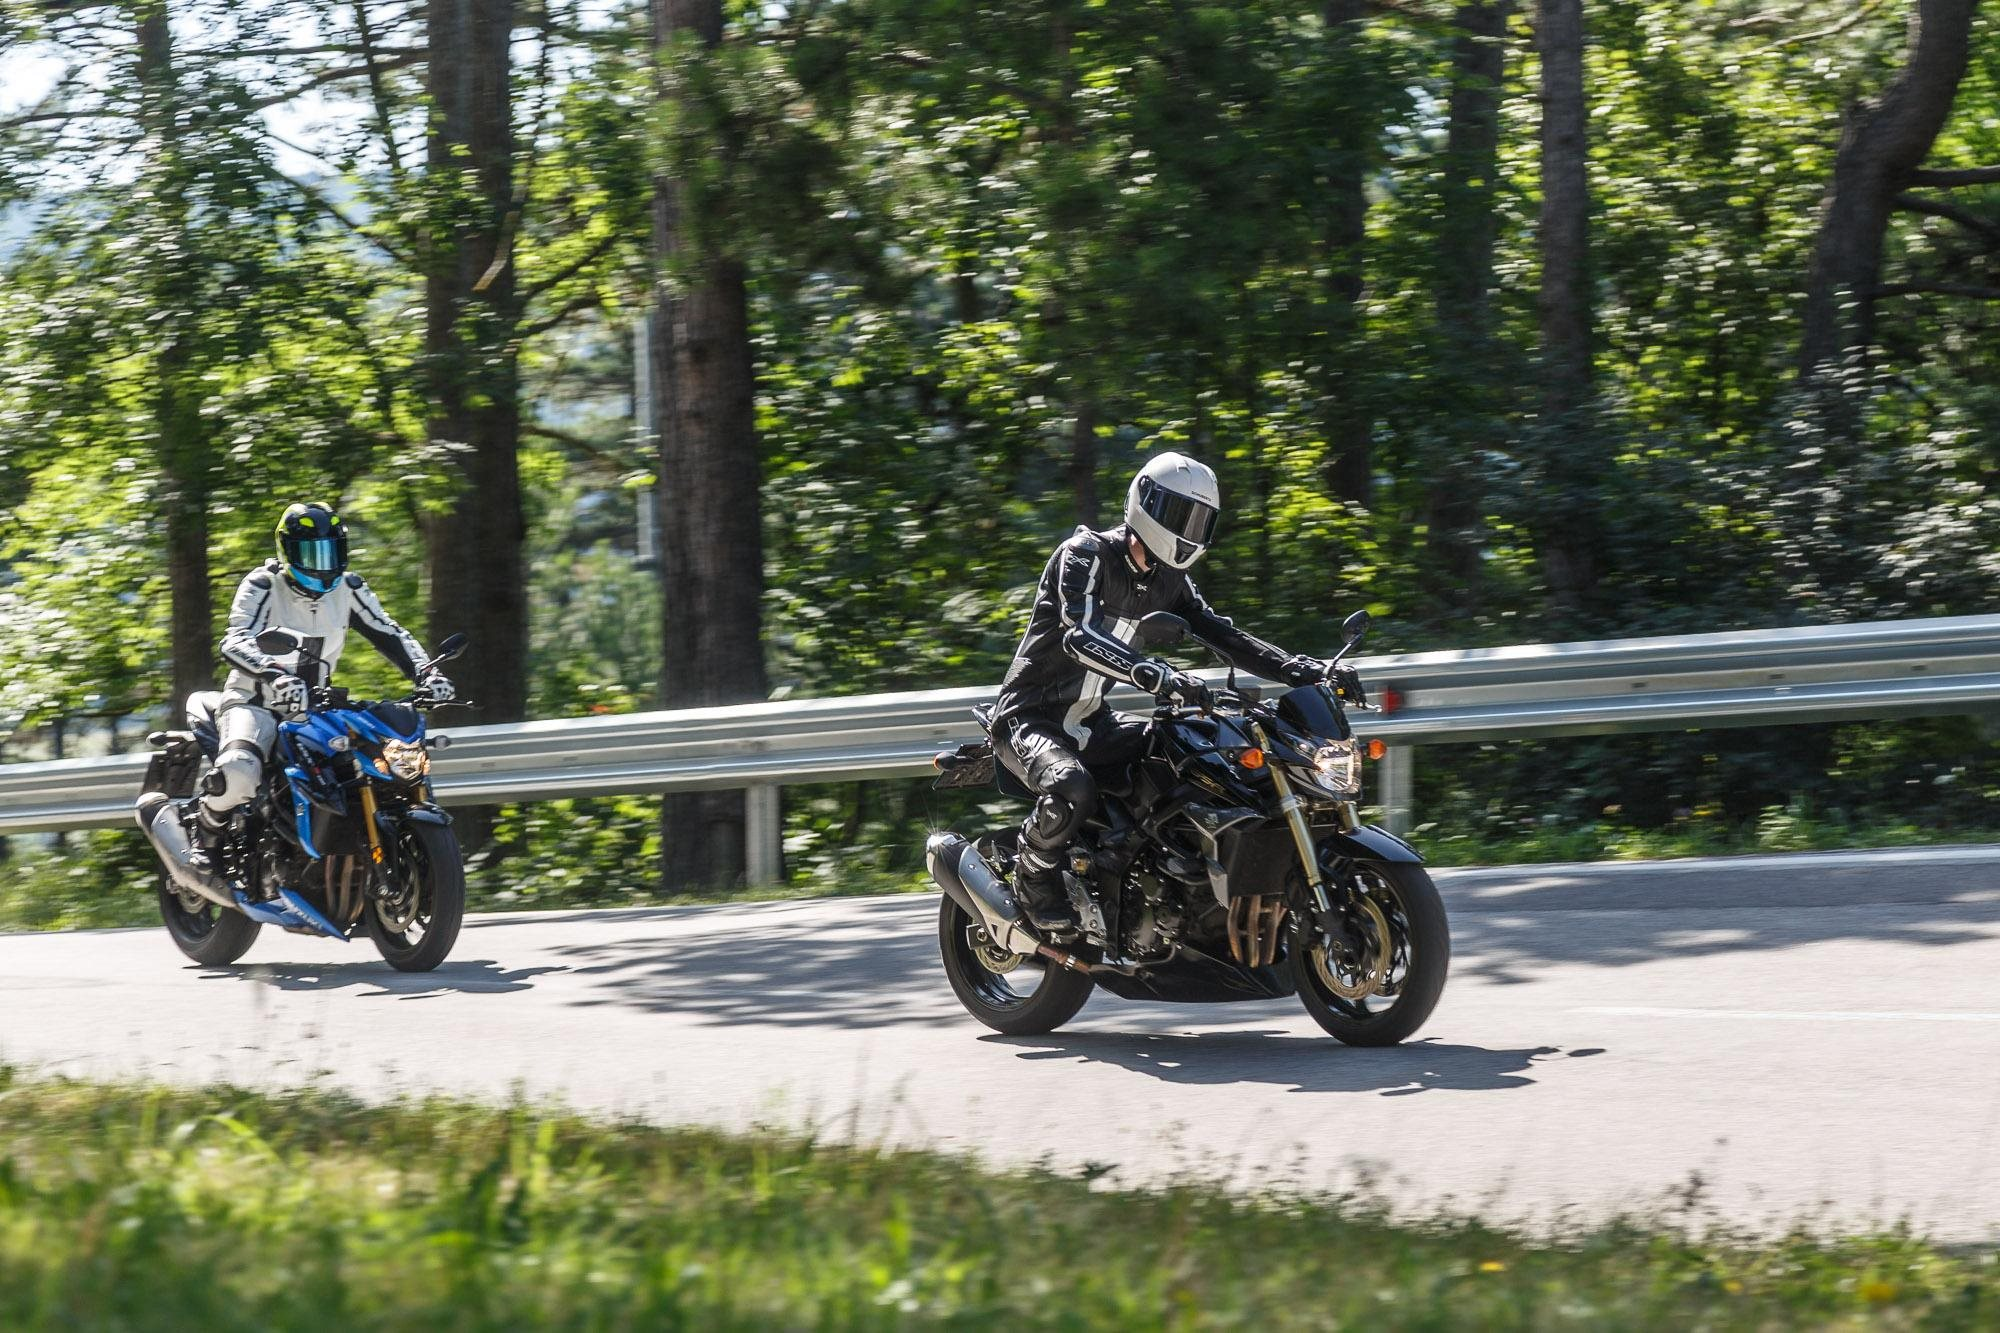 testbericht suzuki gsx s 750 vs gsr 750 test 2017. Black Bedroom Furniture Sets. Home Design Ideas